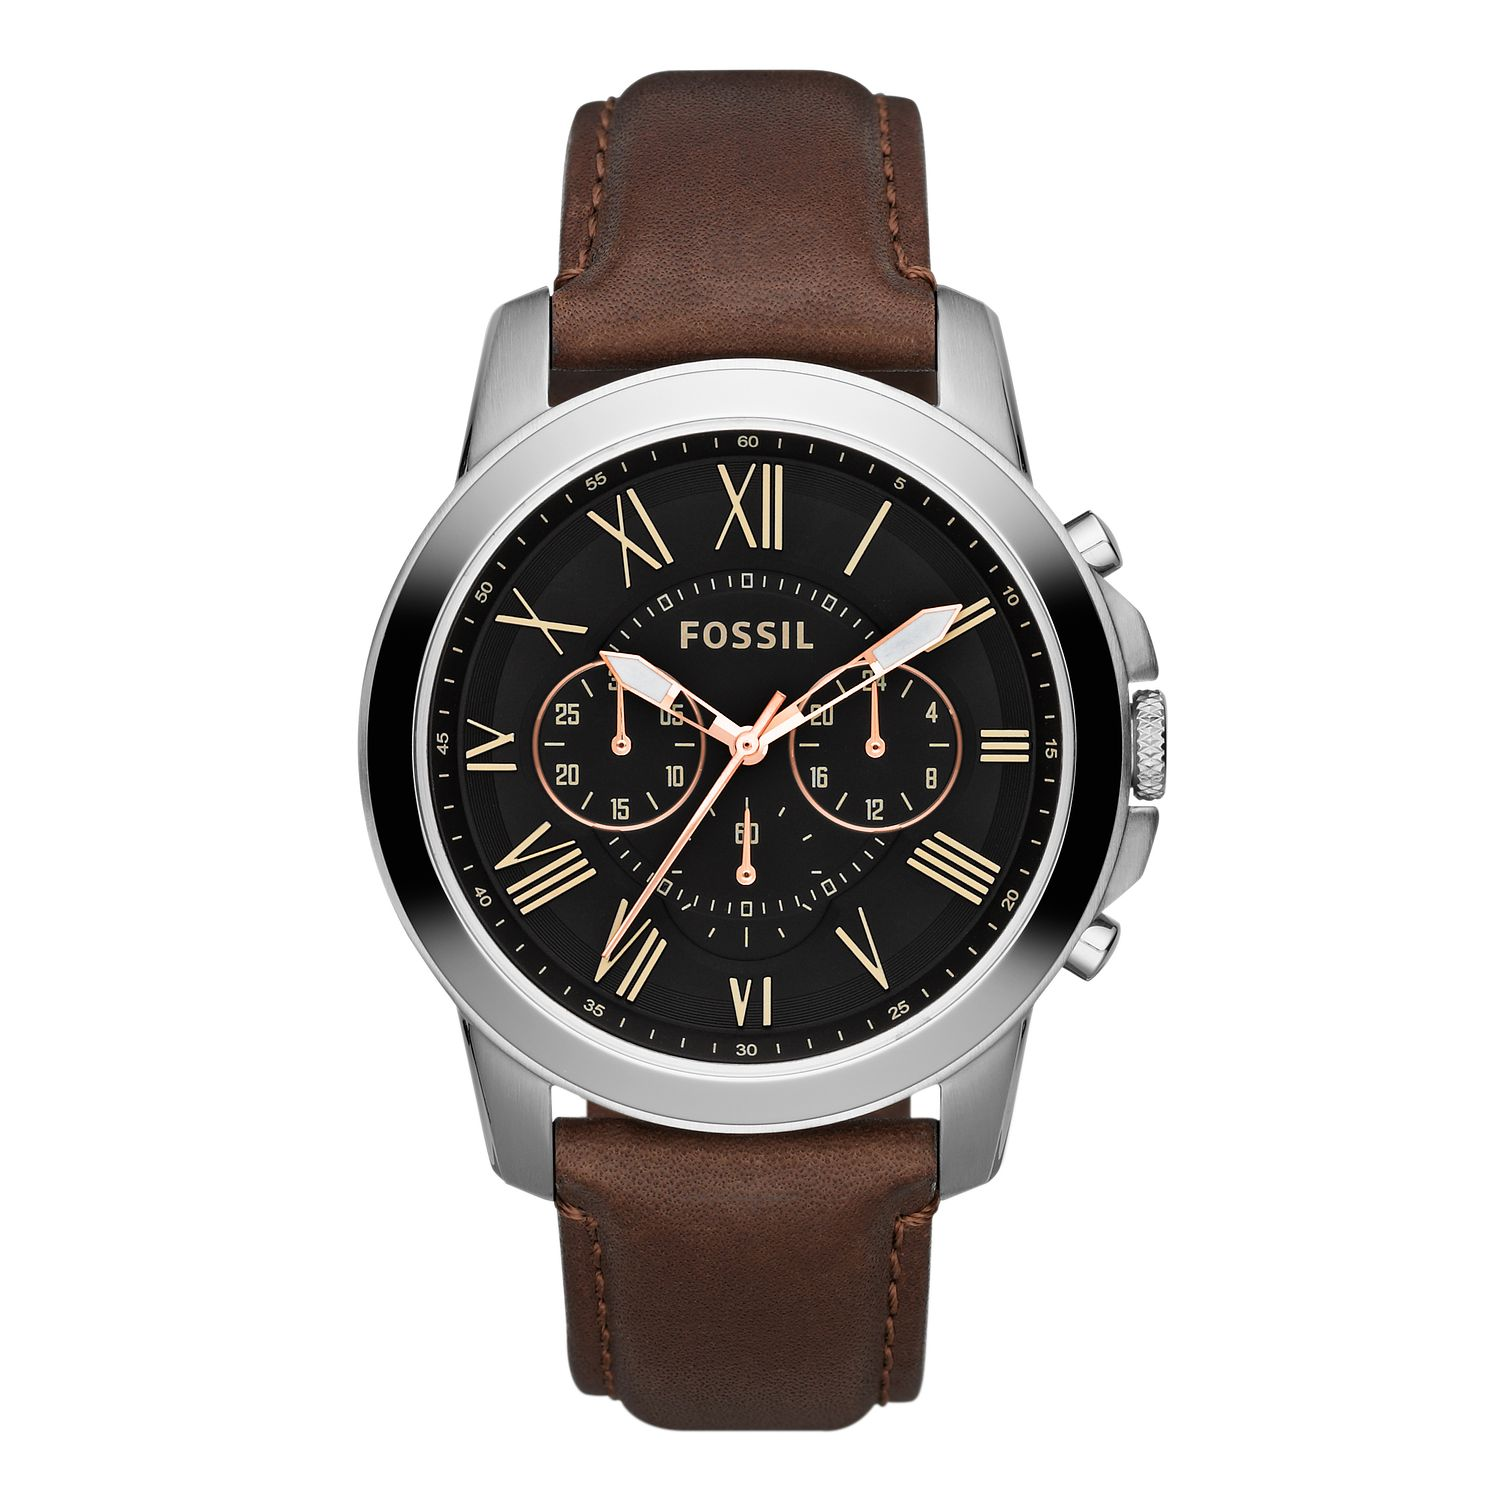 leather watch strap collections man htm grand monochrome loading watches twdag images product kensington